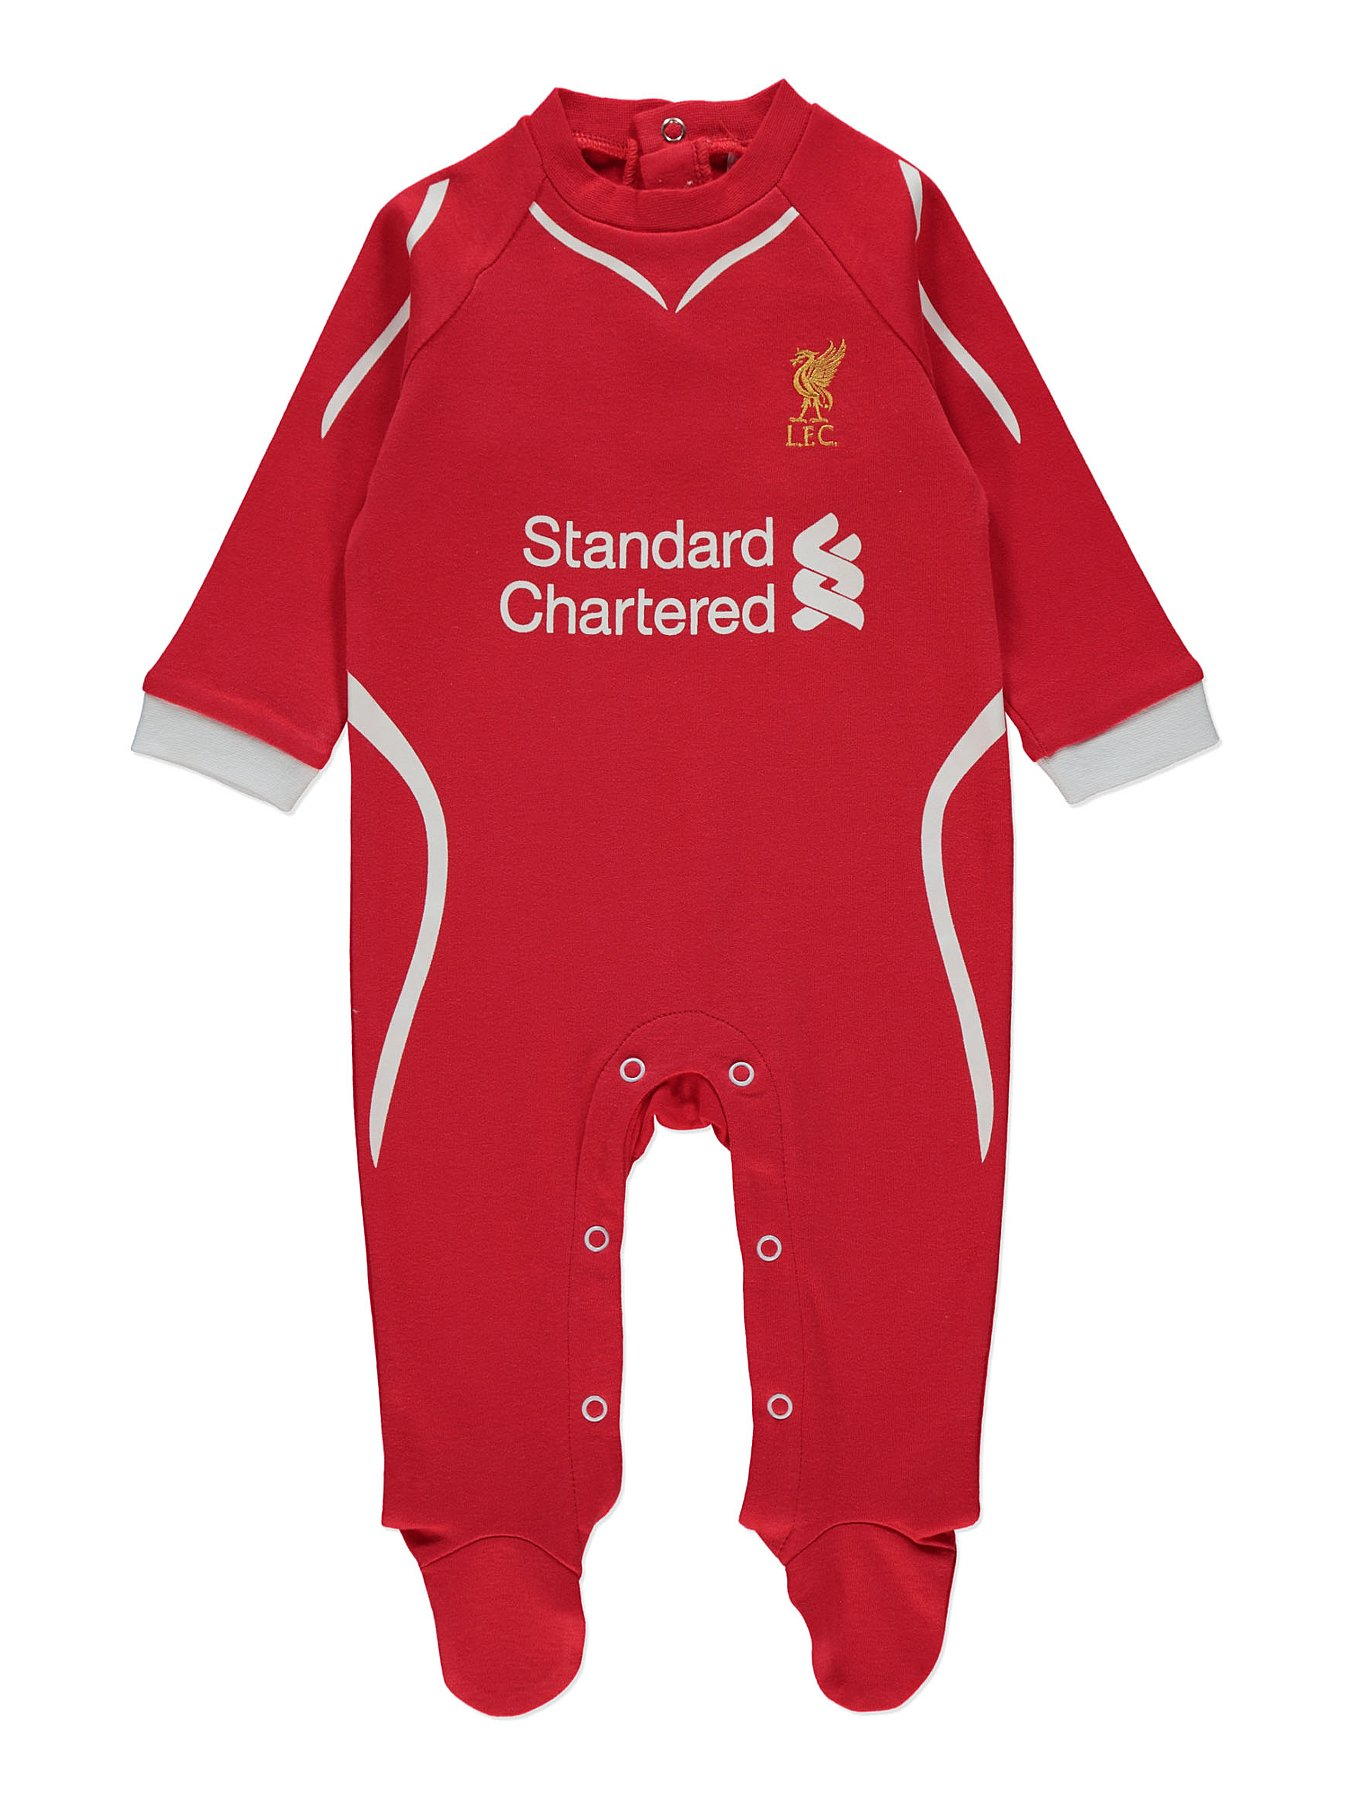 3128bbf79 Official Liverpool FC Merchandise Sleepsuit. Reset